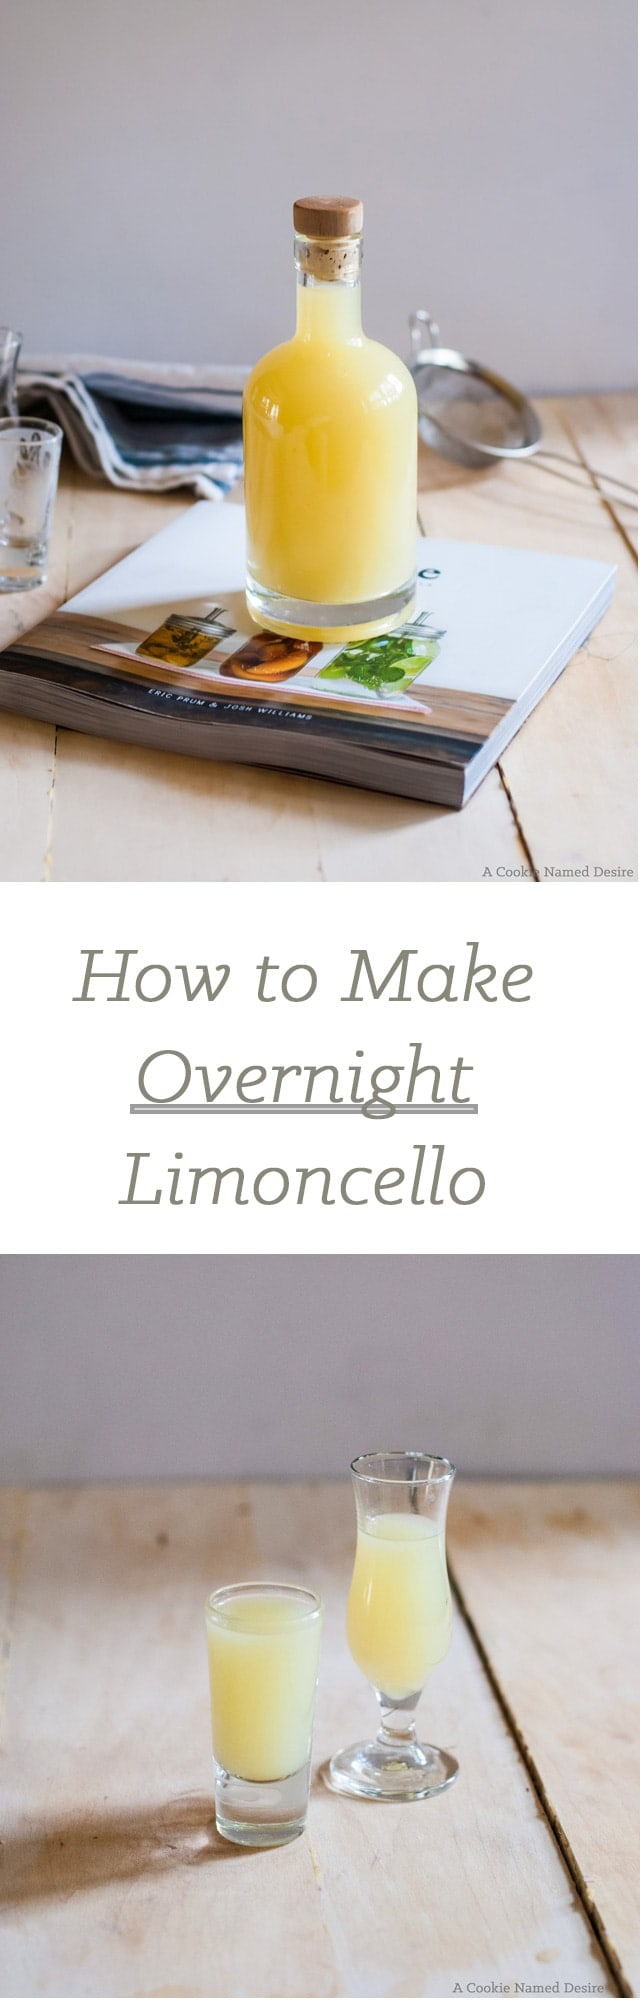 How to make overnight limoncello